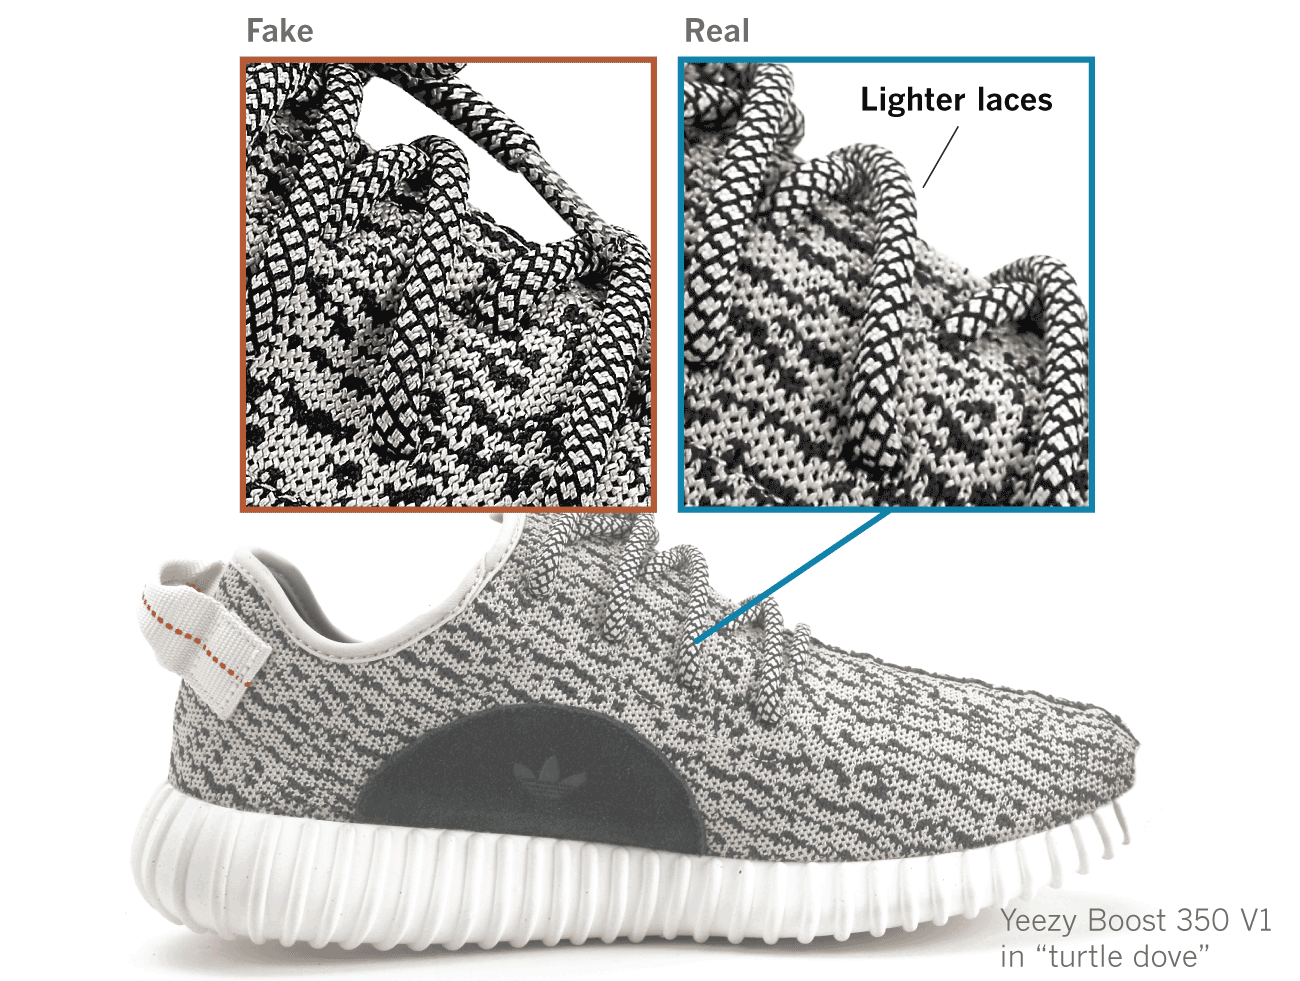 super popular 2a298 3b7a0 ... Adidas Yeezy has become so sophisticated that even some of the most  astute fans can t tell the difference between a well-made fake and the real  deal.